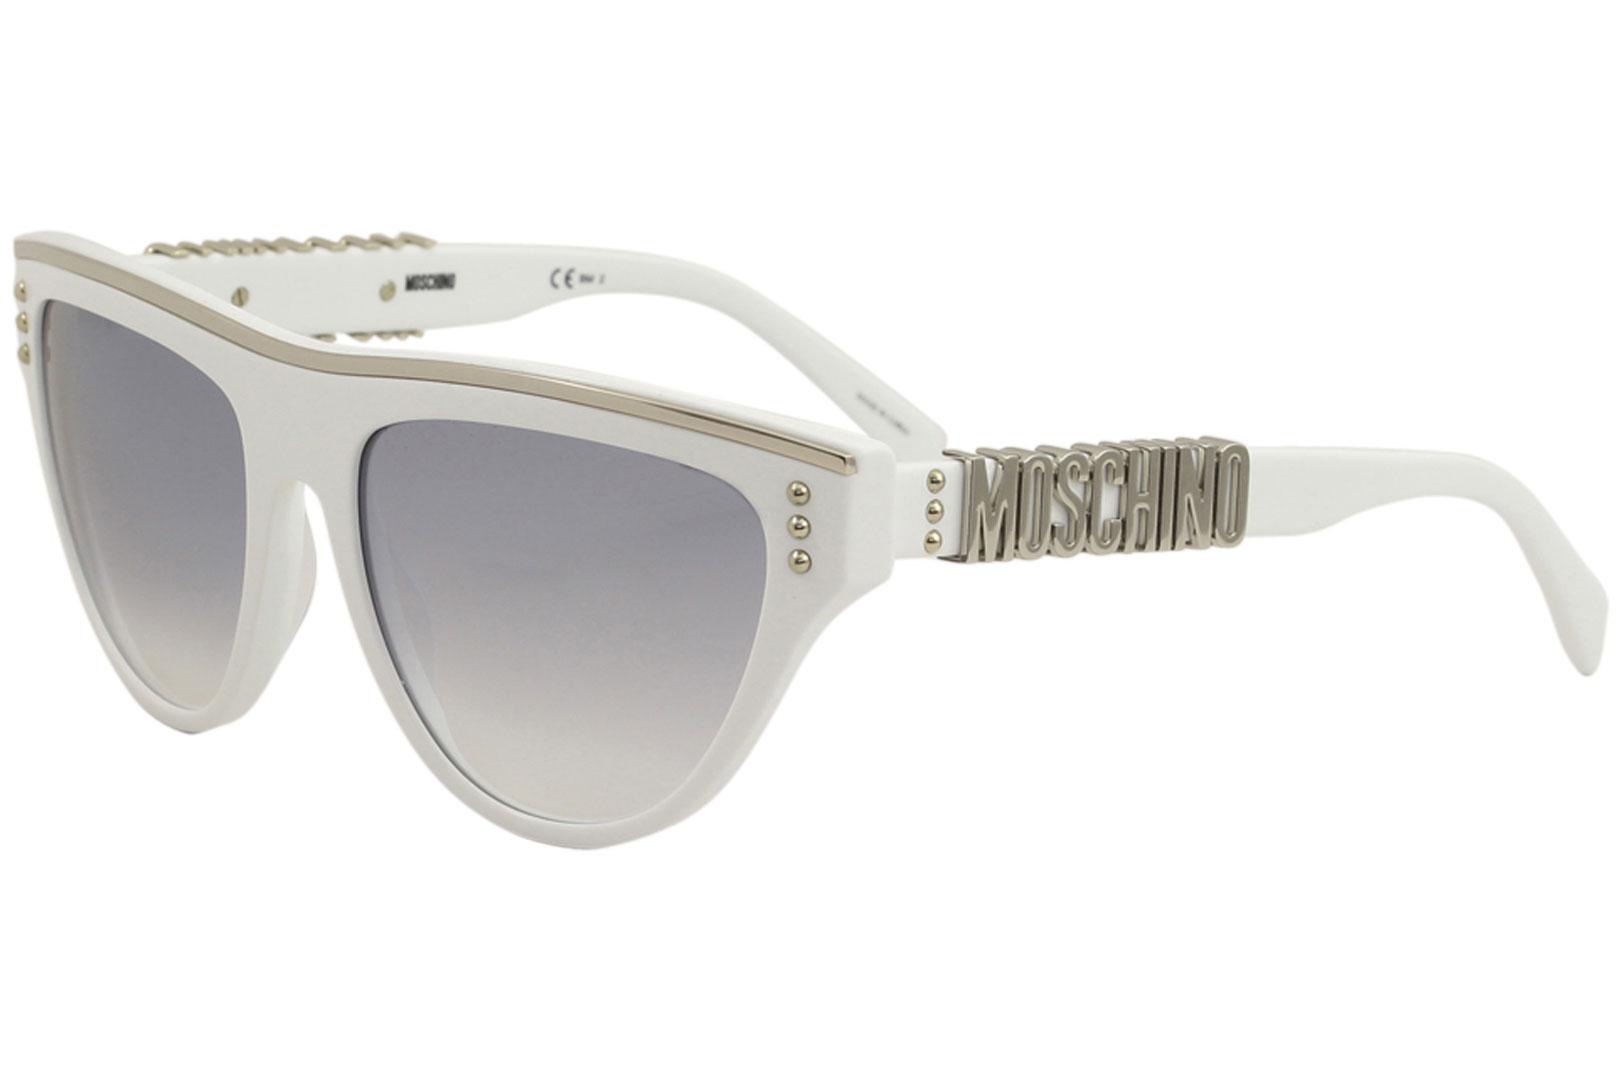 Image of Moschino Women's MOS002/S MOS/002/S Fashion Square Sunglasses - White/Grey Gradient Silver Mirror   VK6IC - Lens 56 Bridge 18 B 45.5 ED 63.1 Temple 135mm